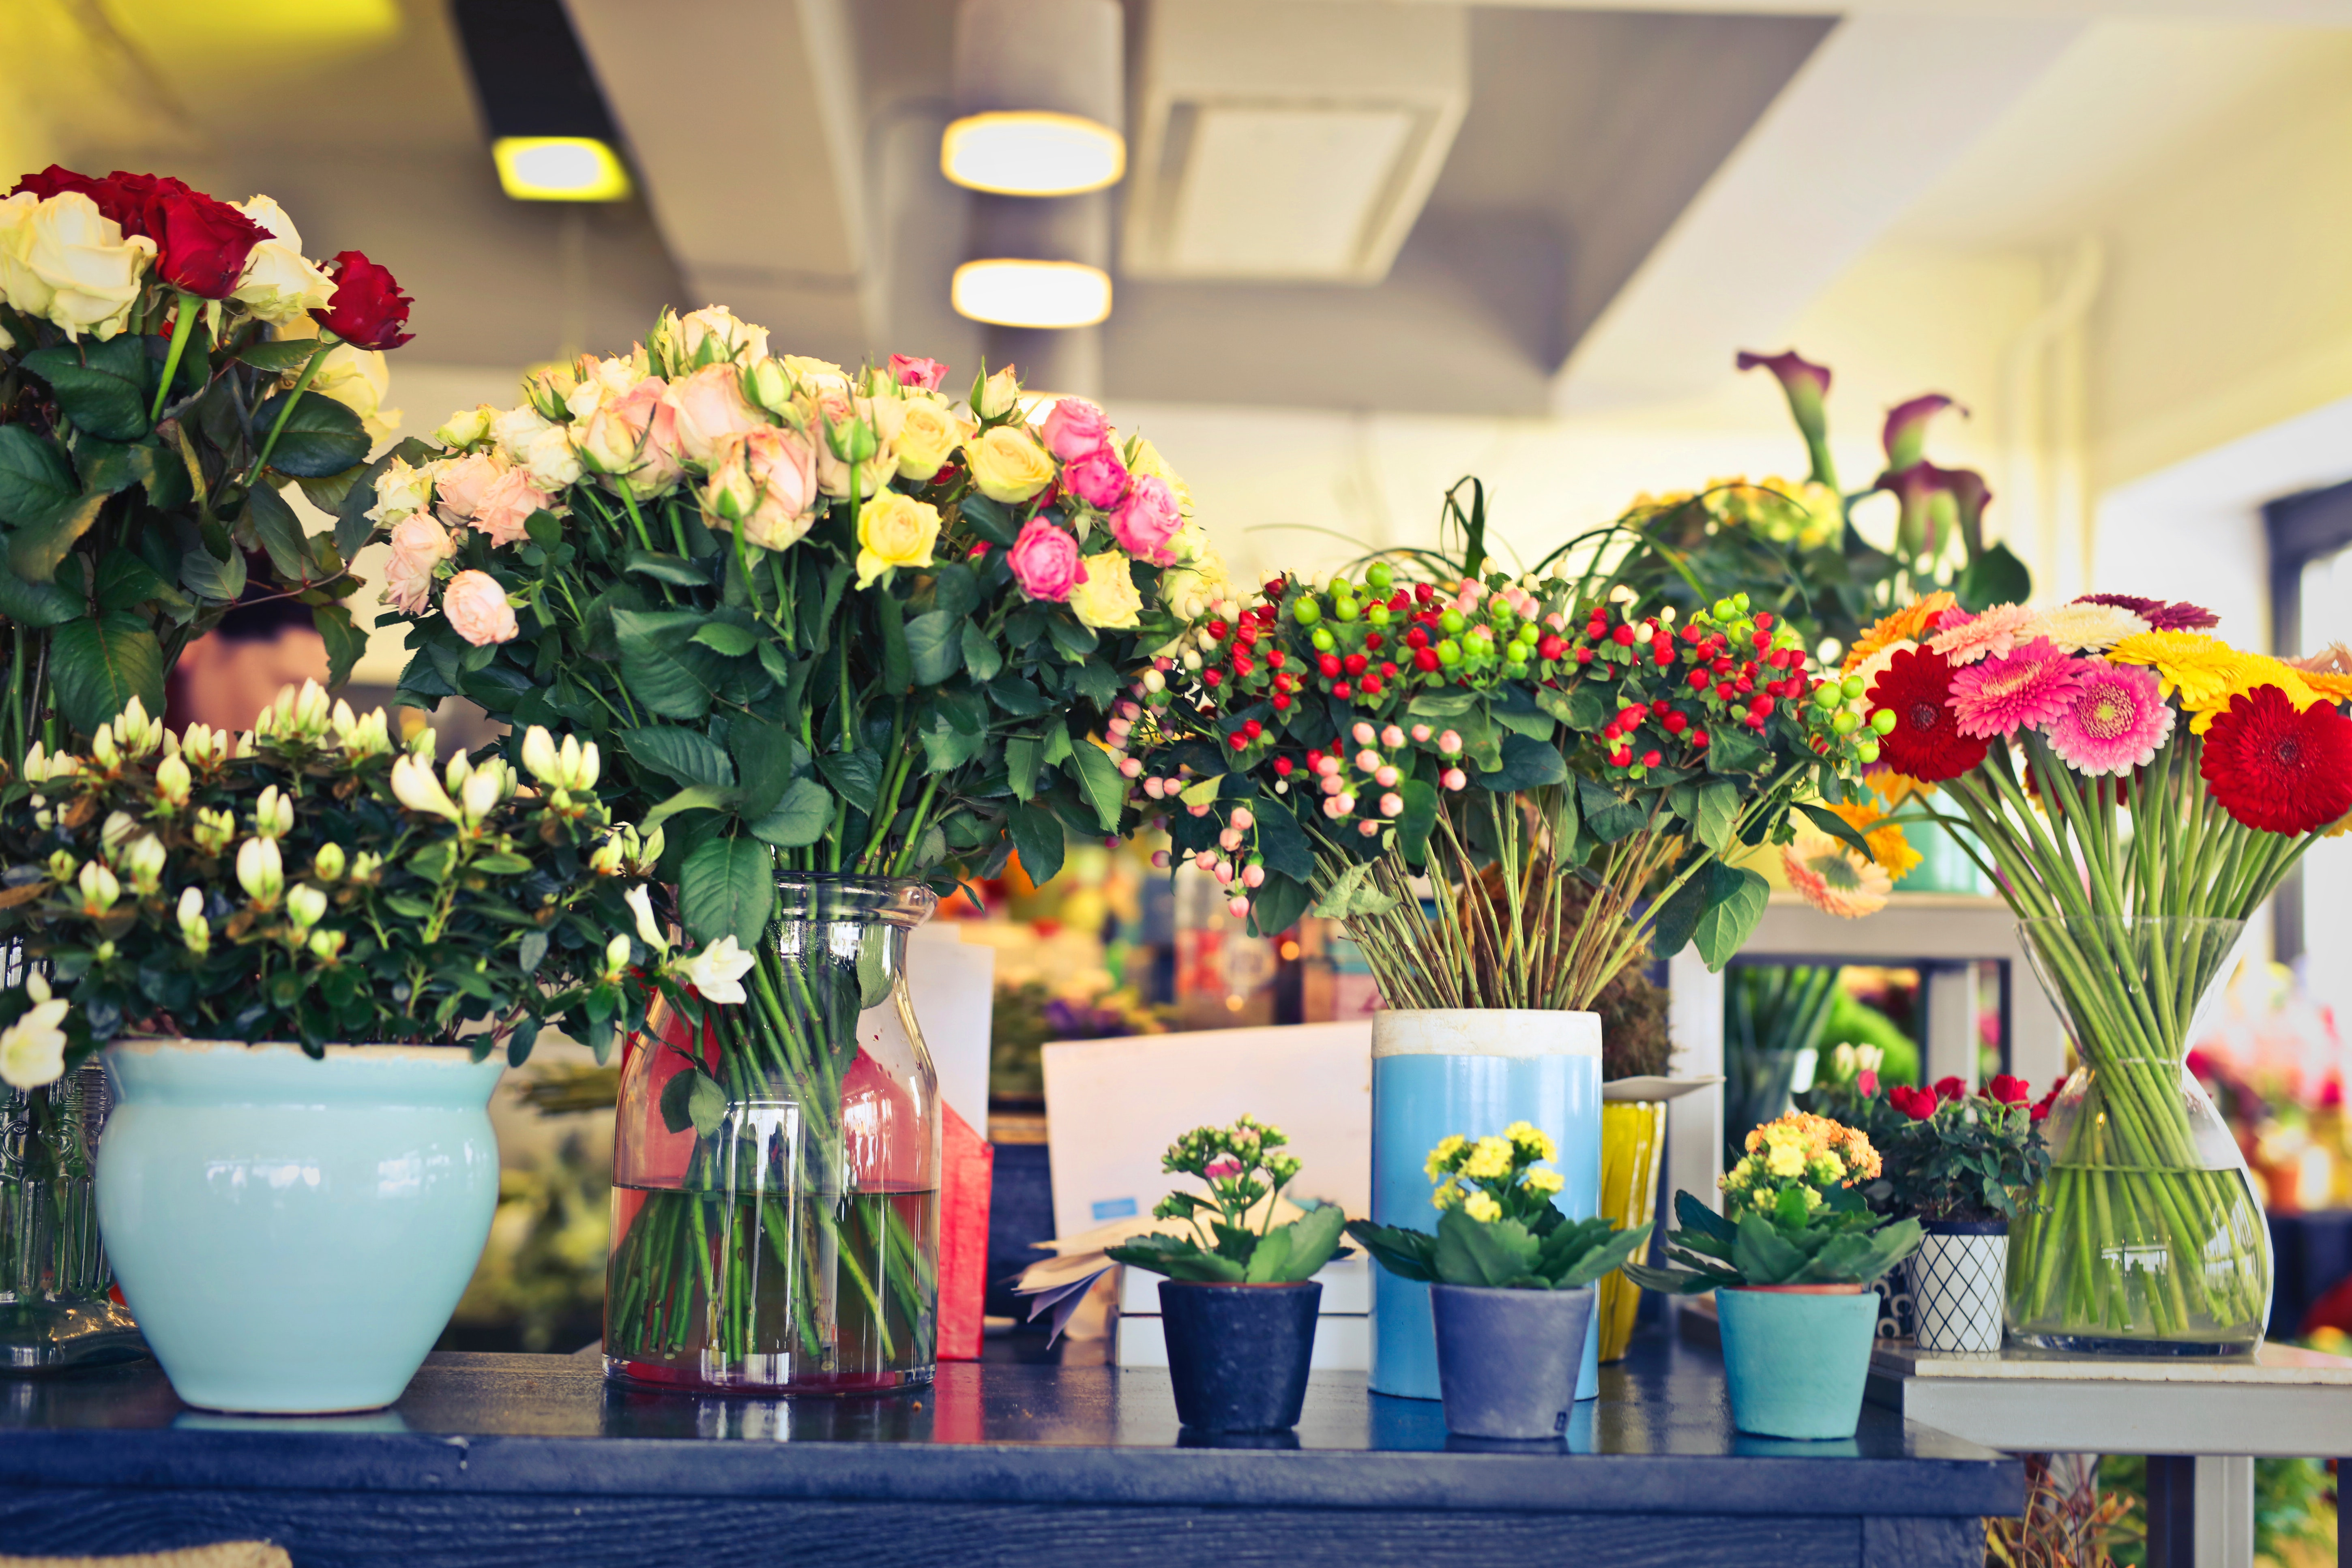 Absentee Wake County Florist Priced For Quick Sale